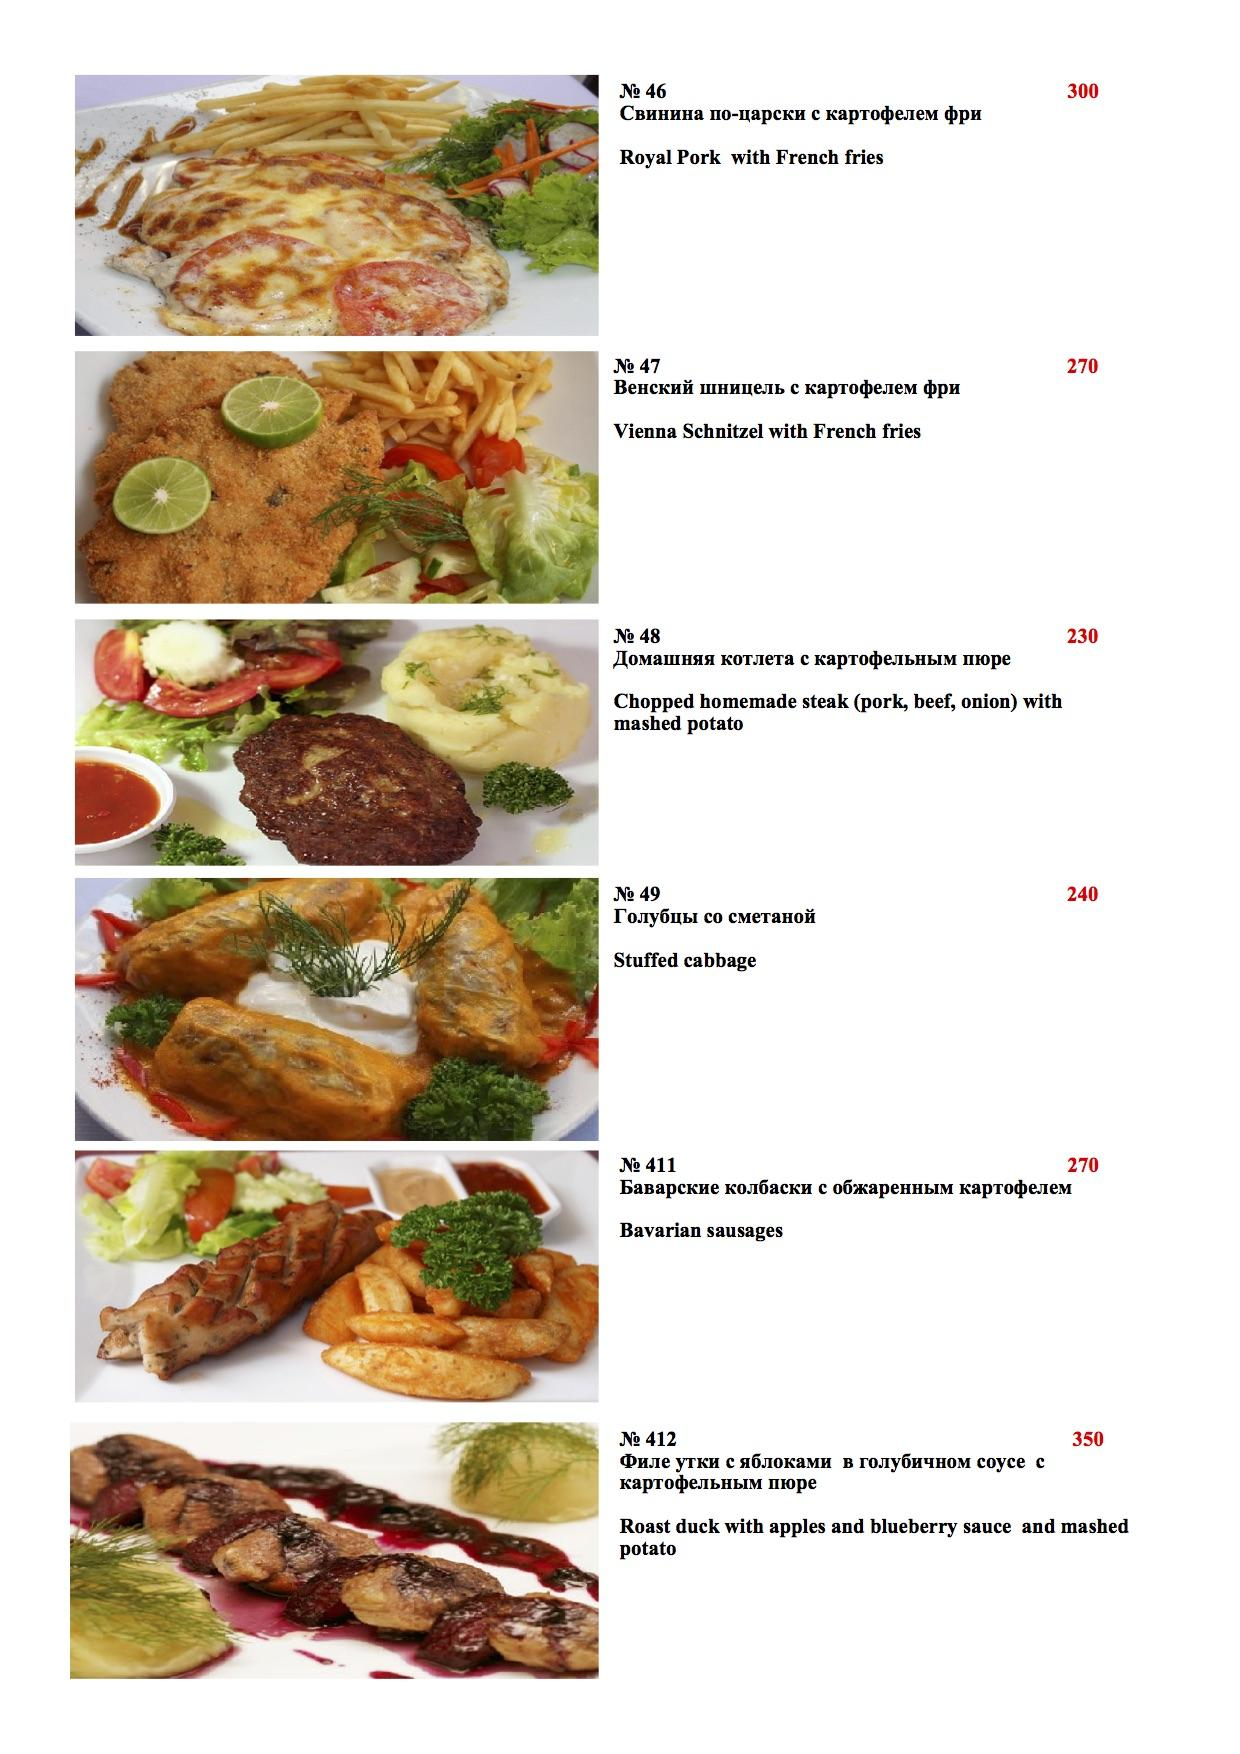 Food delivery in Phuket - Meat dishes 2